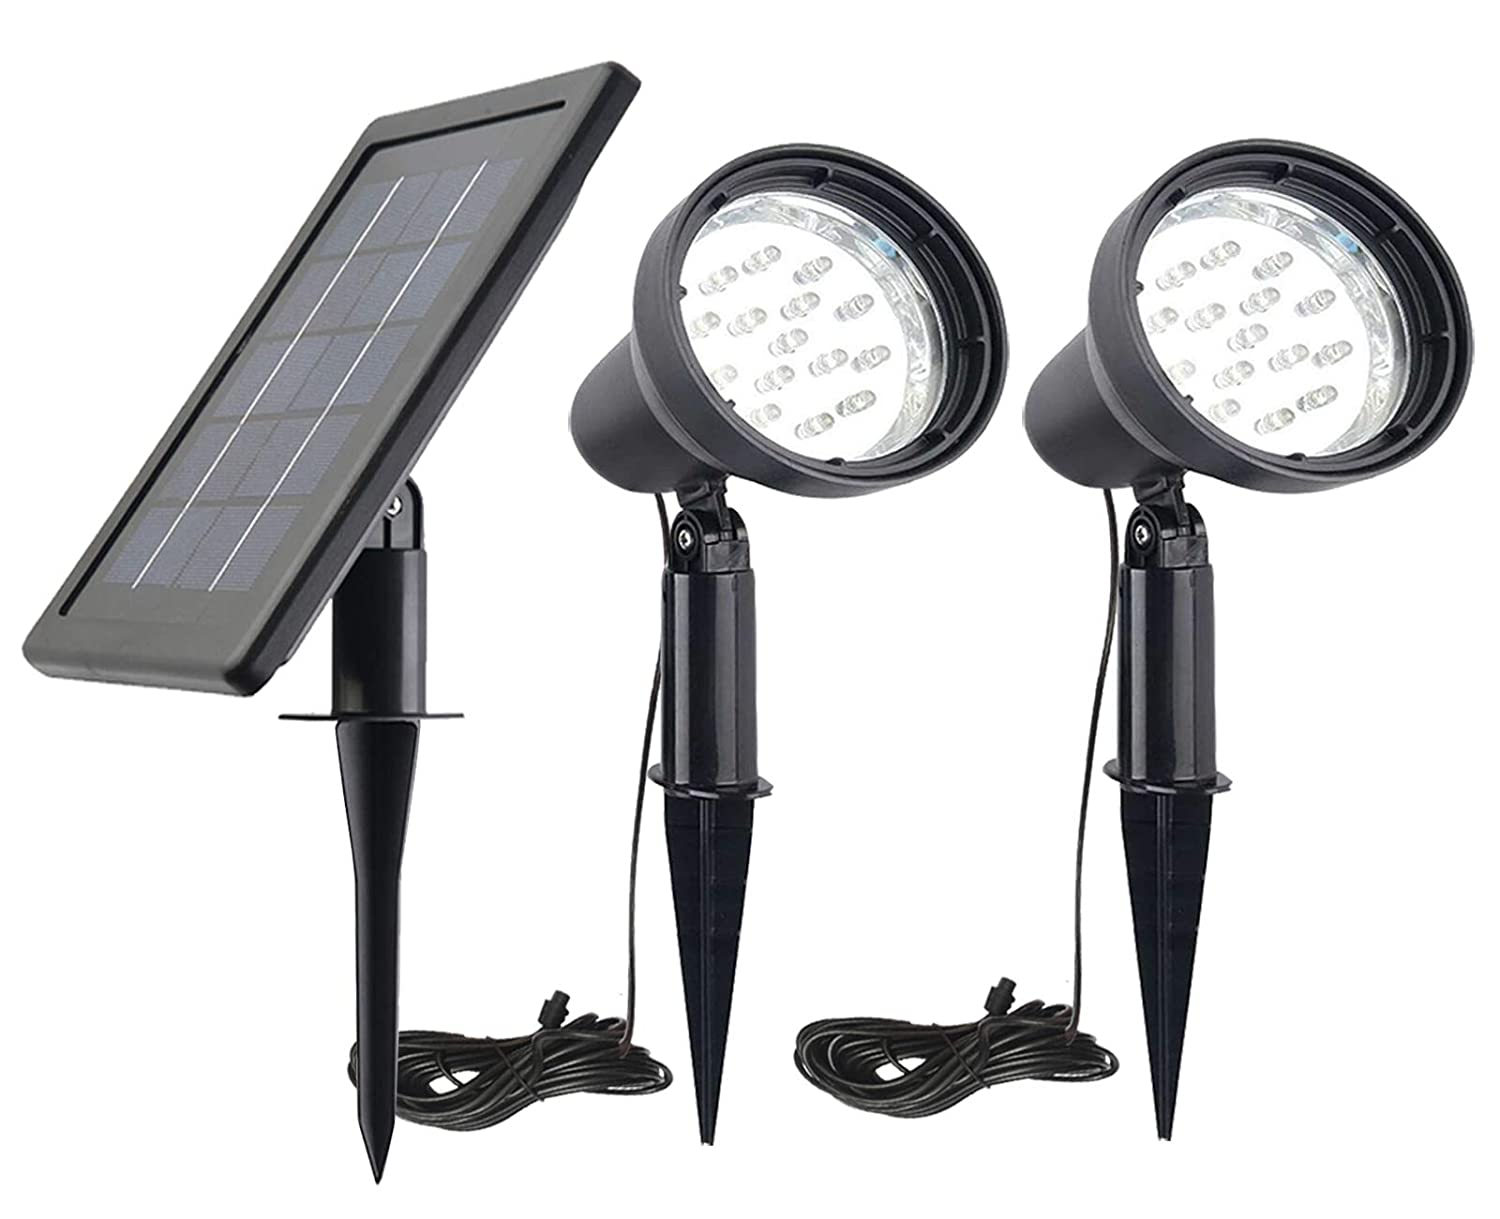 White Solar Spotlight Outdoor 2 in 1 Flag Pole Light IP65 3 Power Modes Solar Spot Light for Patio Tree Pathway Driveways-Automatically Activates from Dusk to Dawn